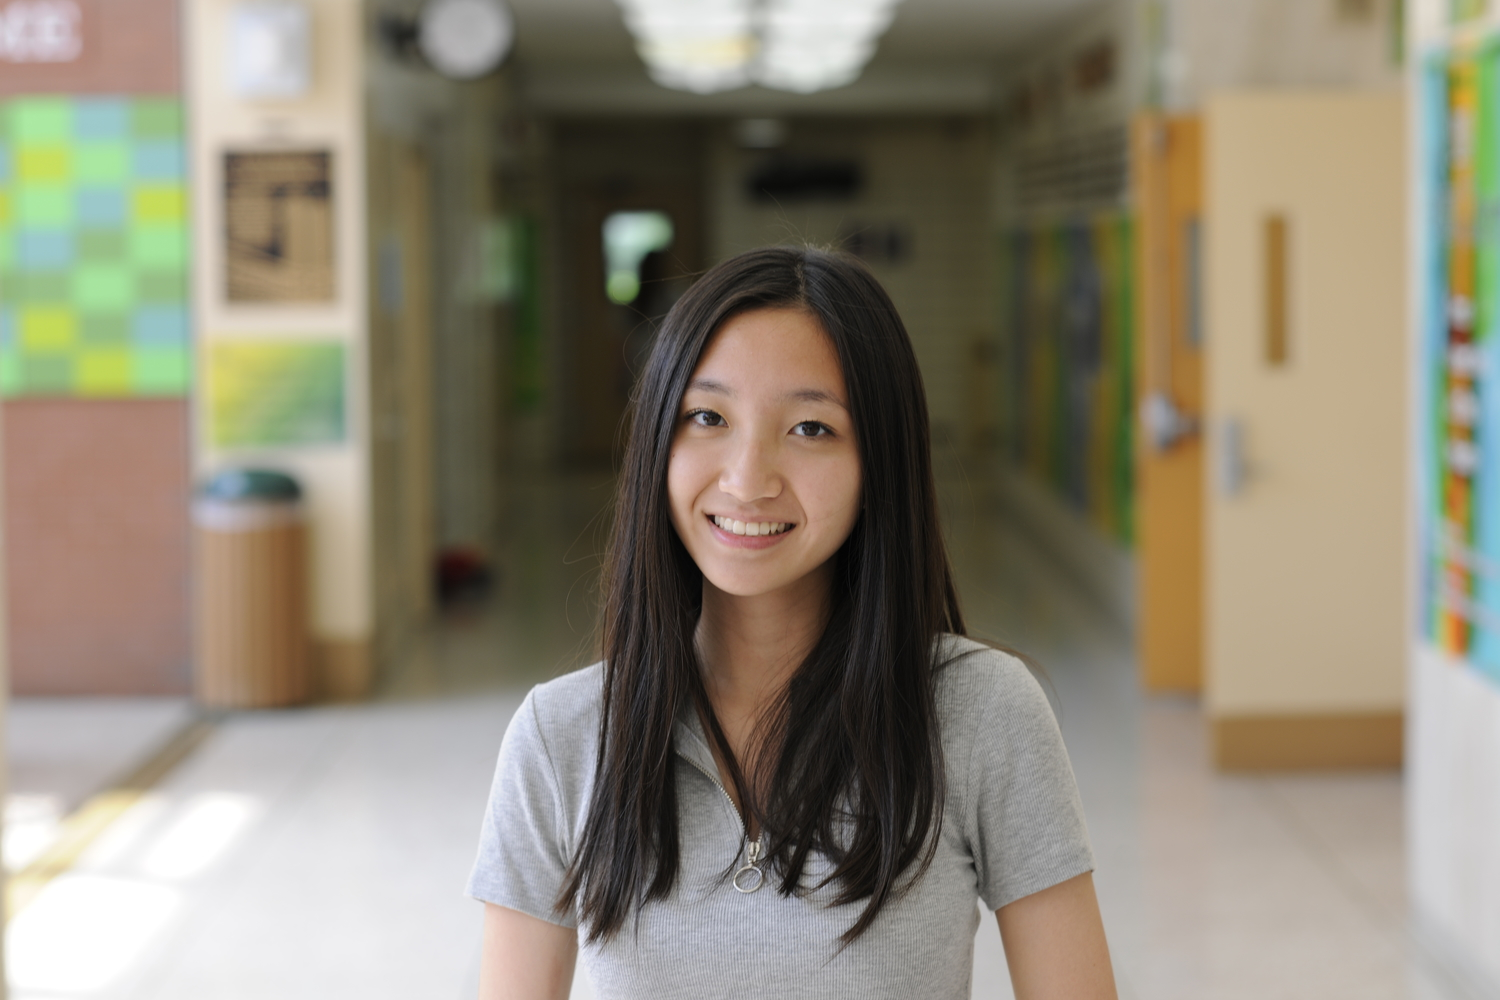 Sunny Jang '19 thinks Holzhauer's strategy, while smart, should have been discovered earlier.